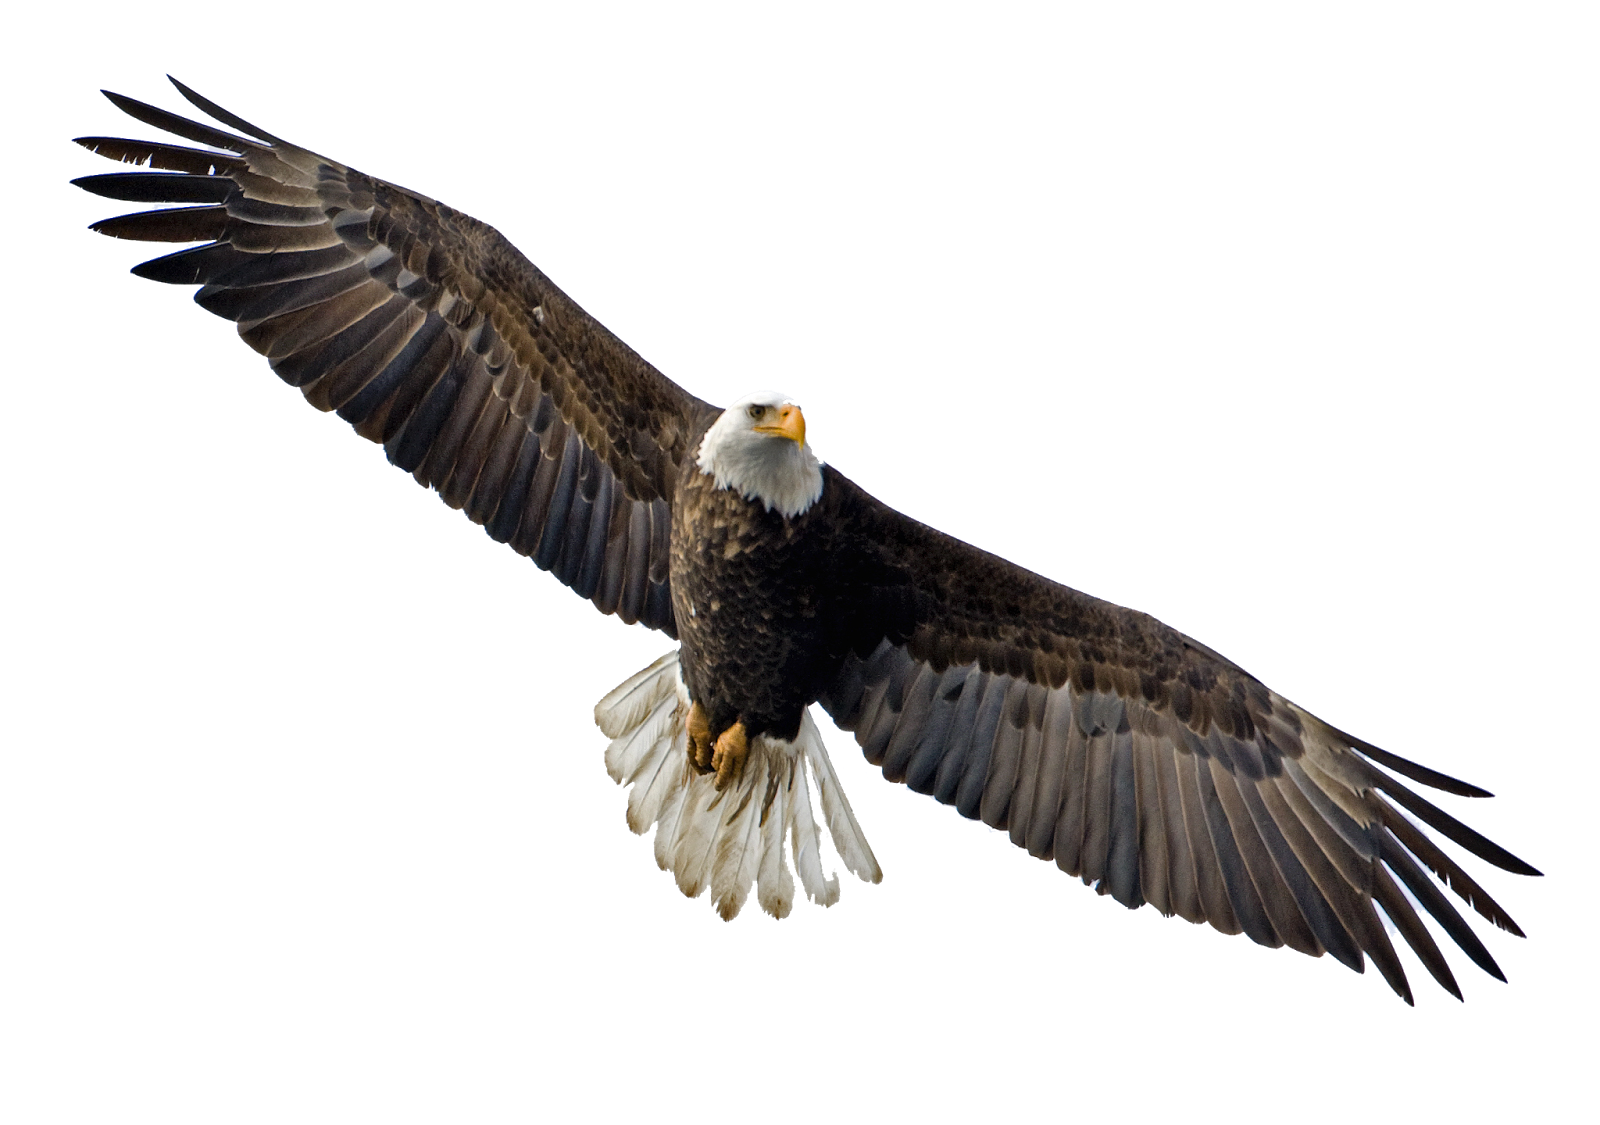 Eagle png. Hq transparent images pluspng